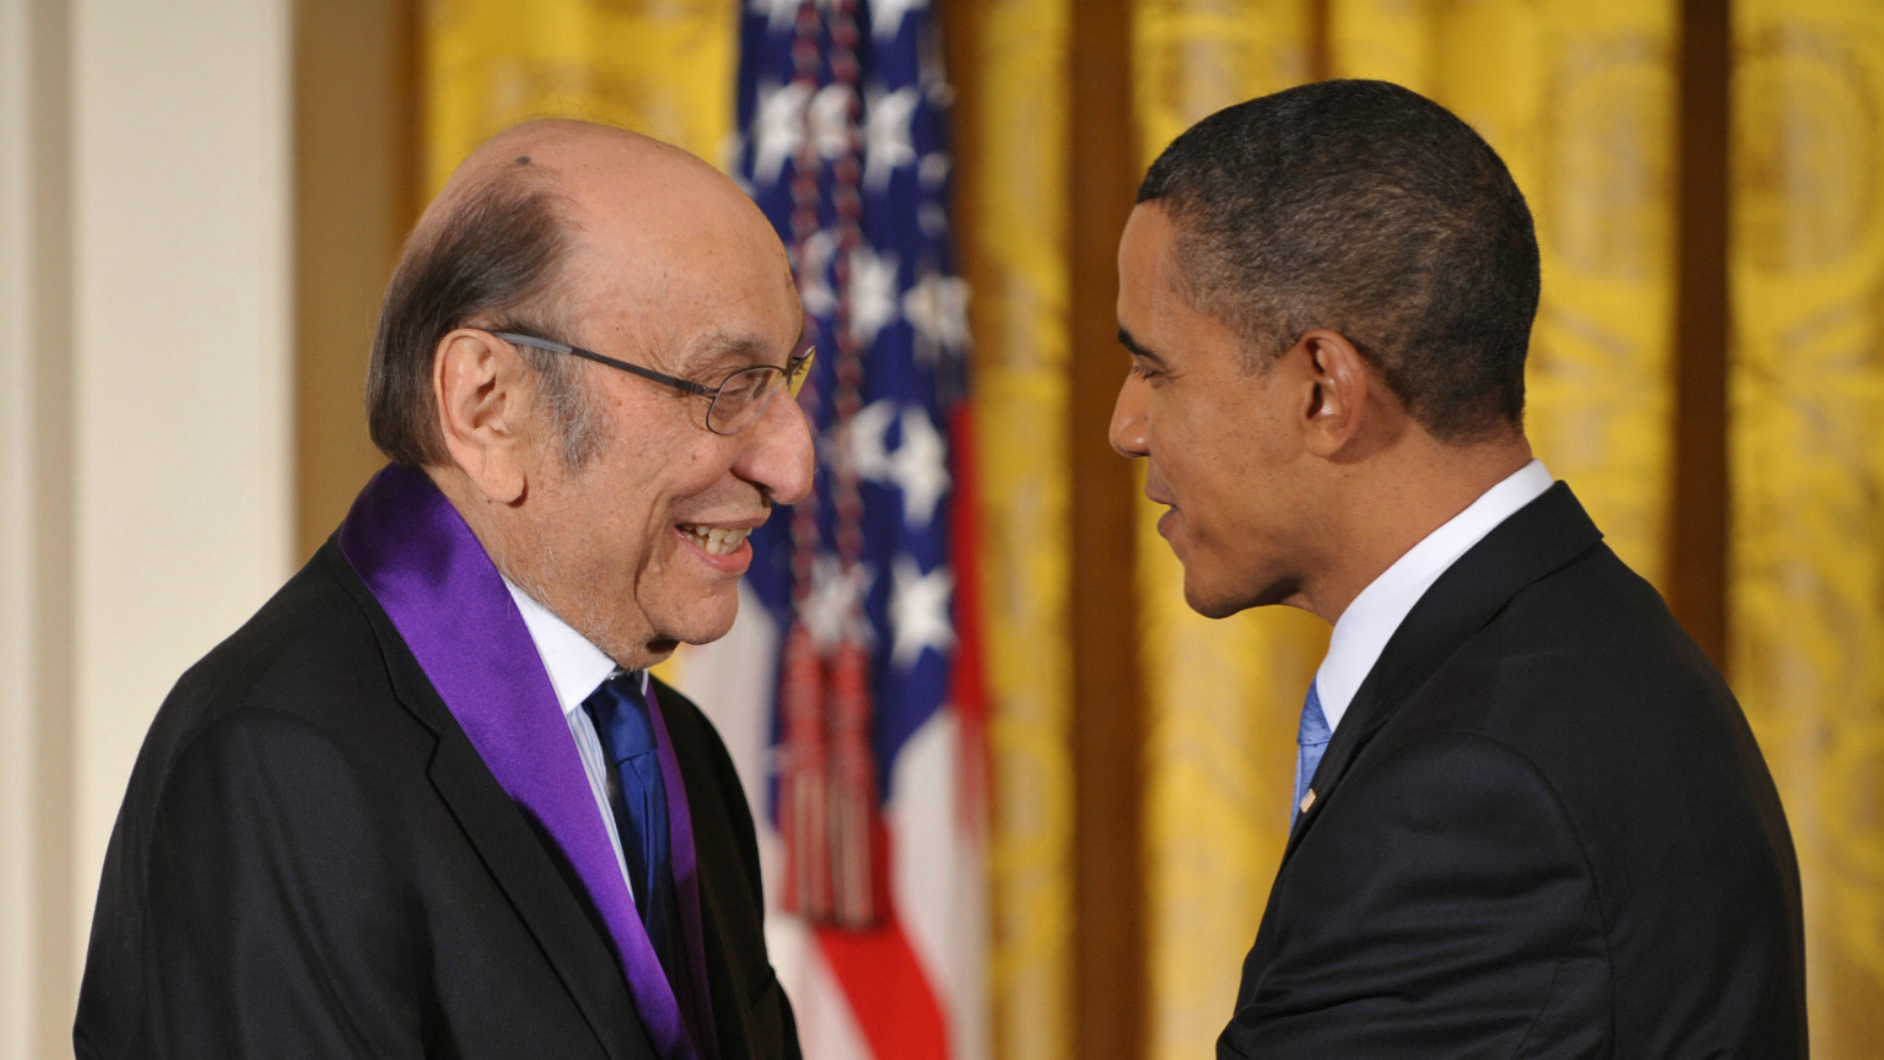 Milton Glaser was the first graphic designer to receive  the National Medal of the Arts award.